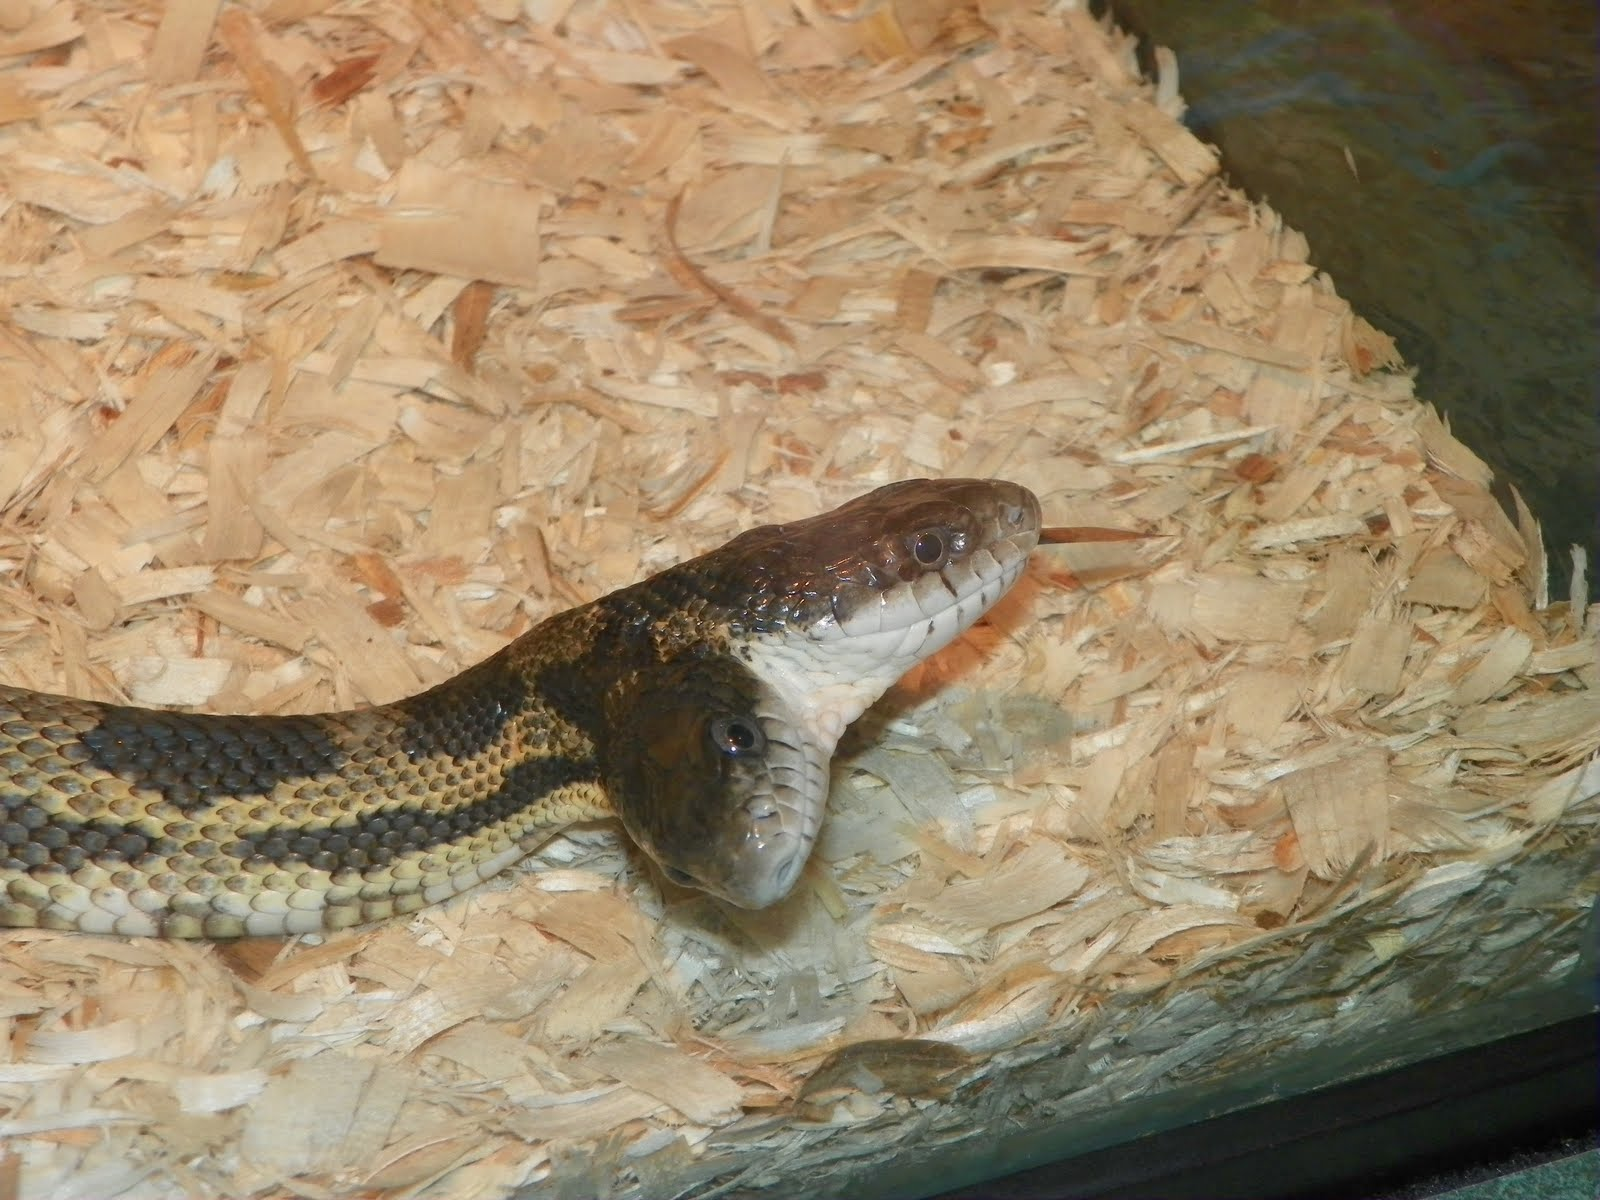 5 Headed Snake - Bing images - photo#5